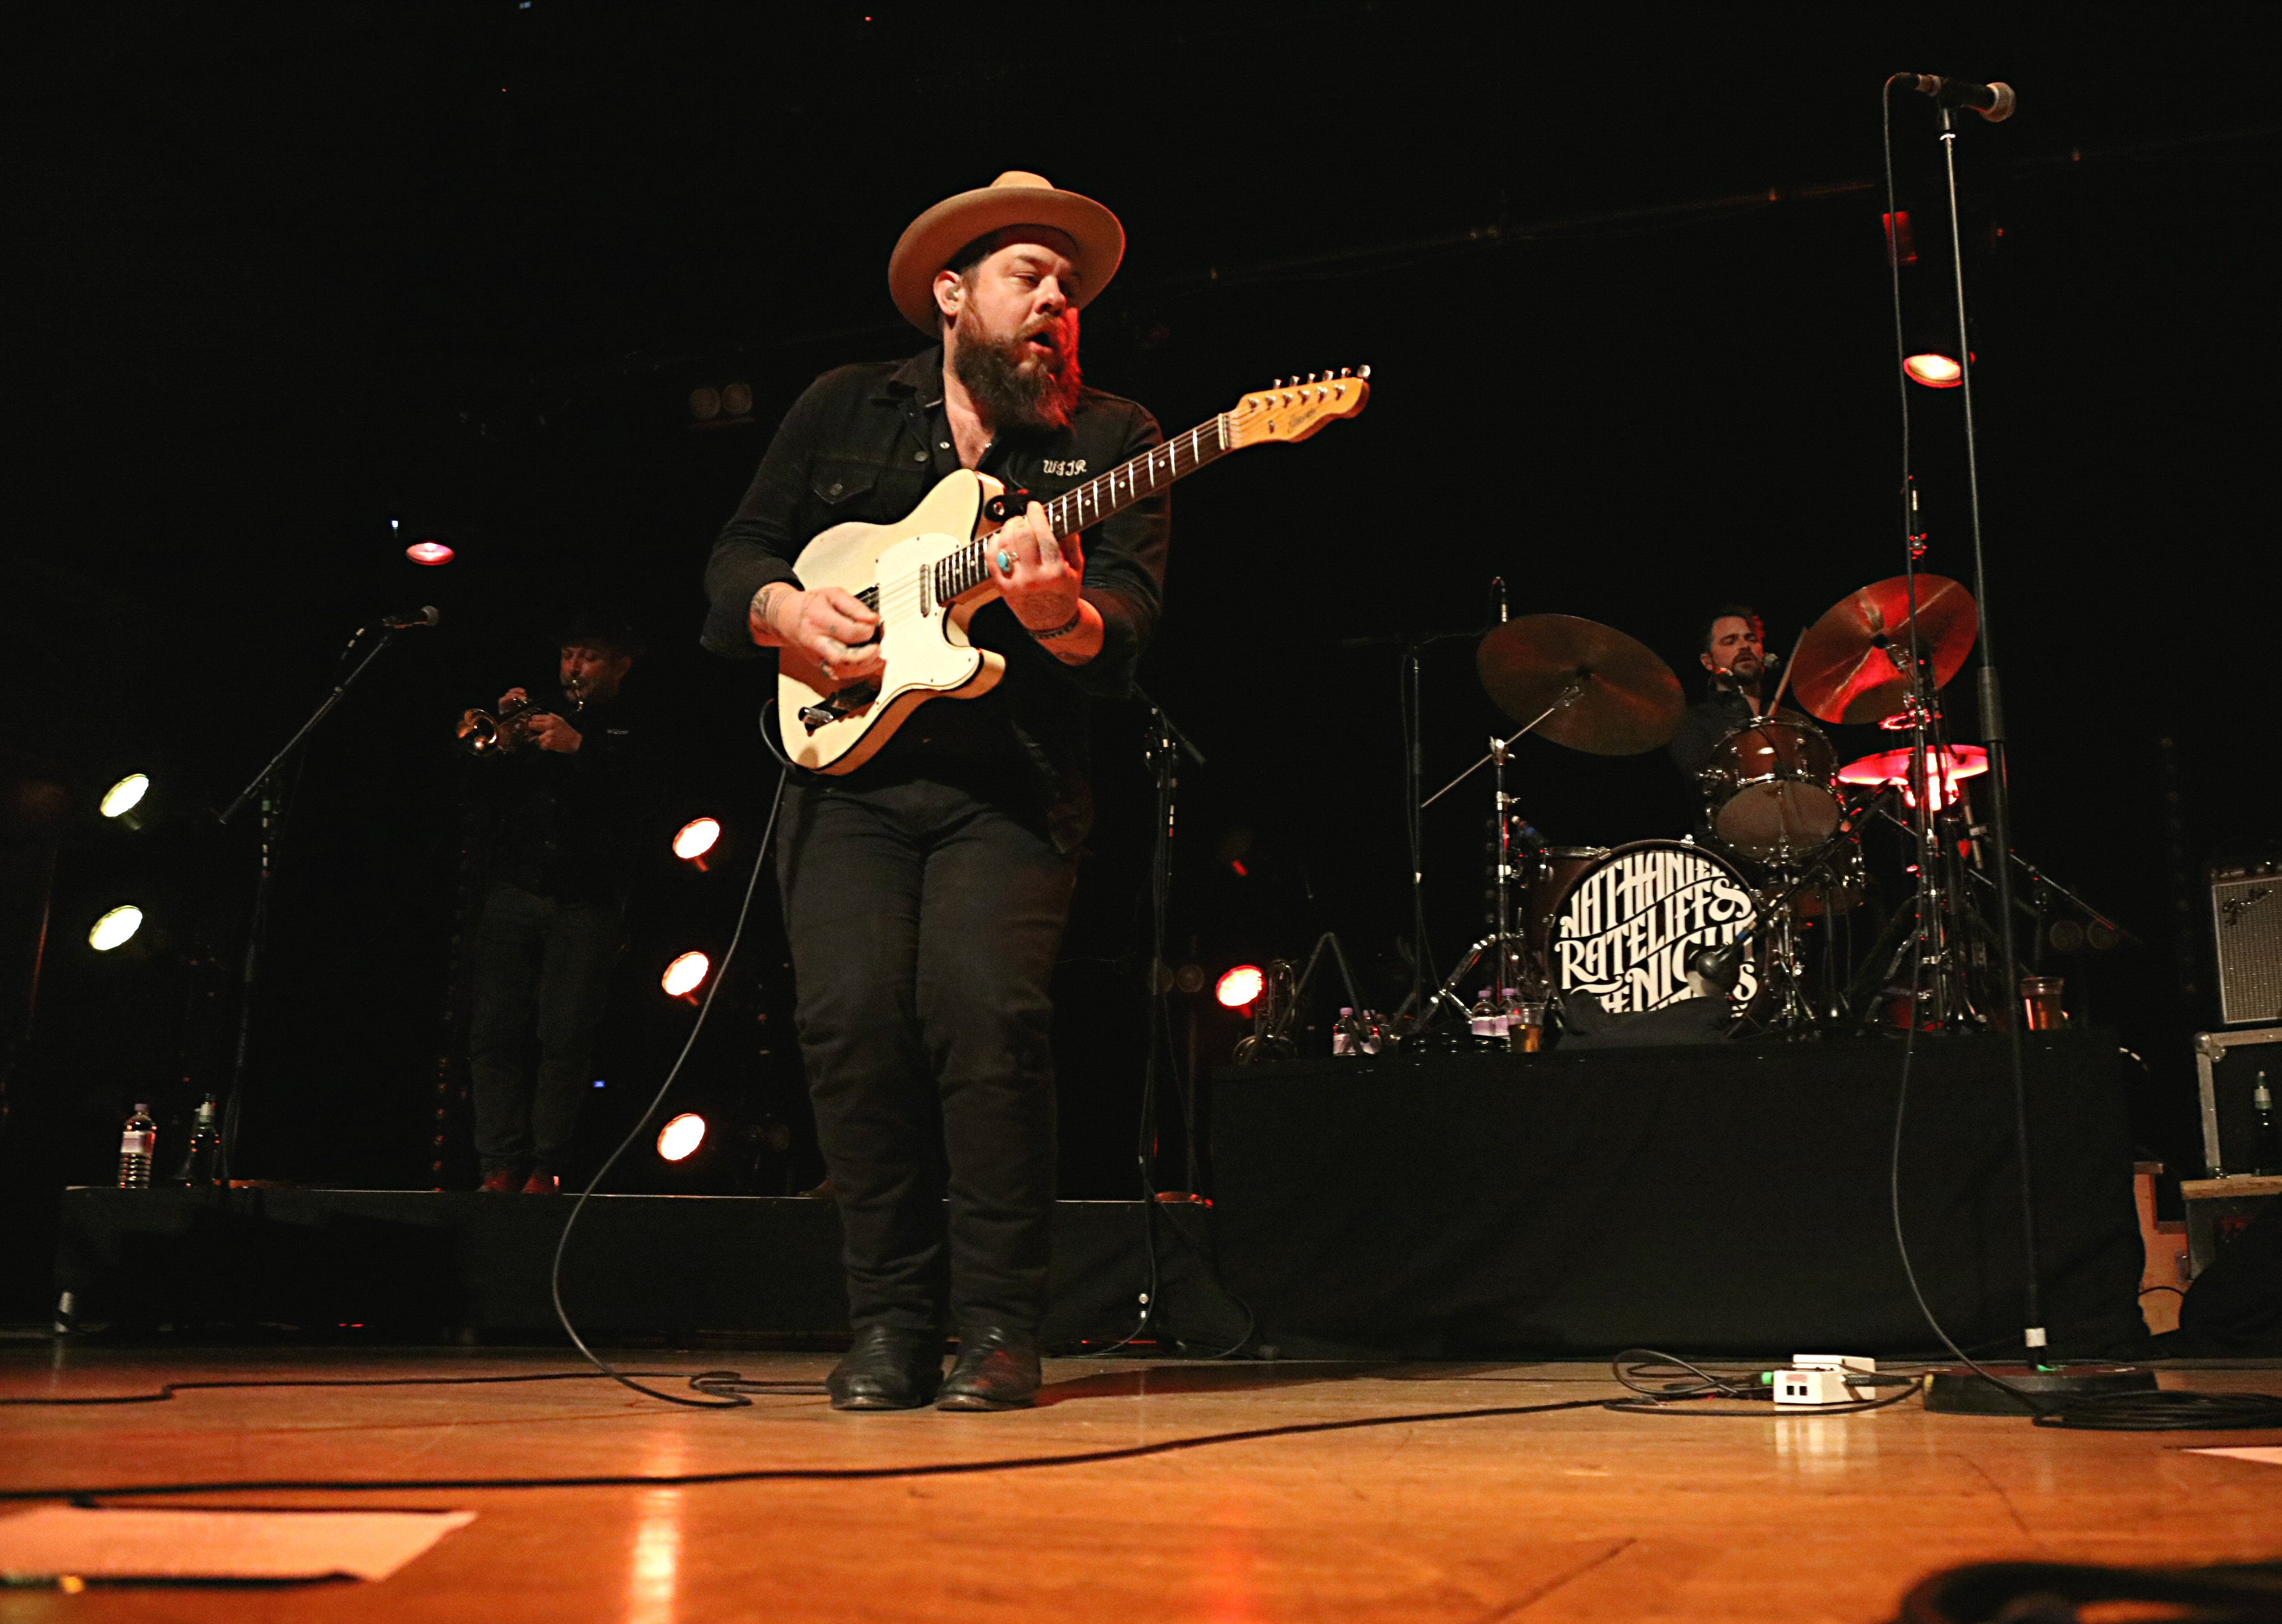 Nathaniel Rateliff and the Night Sweats, De Montfort Hall, Leicester, 17/11/2016